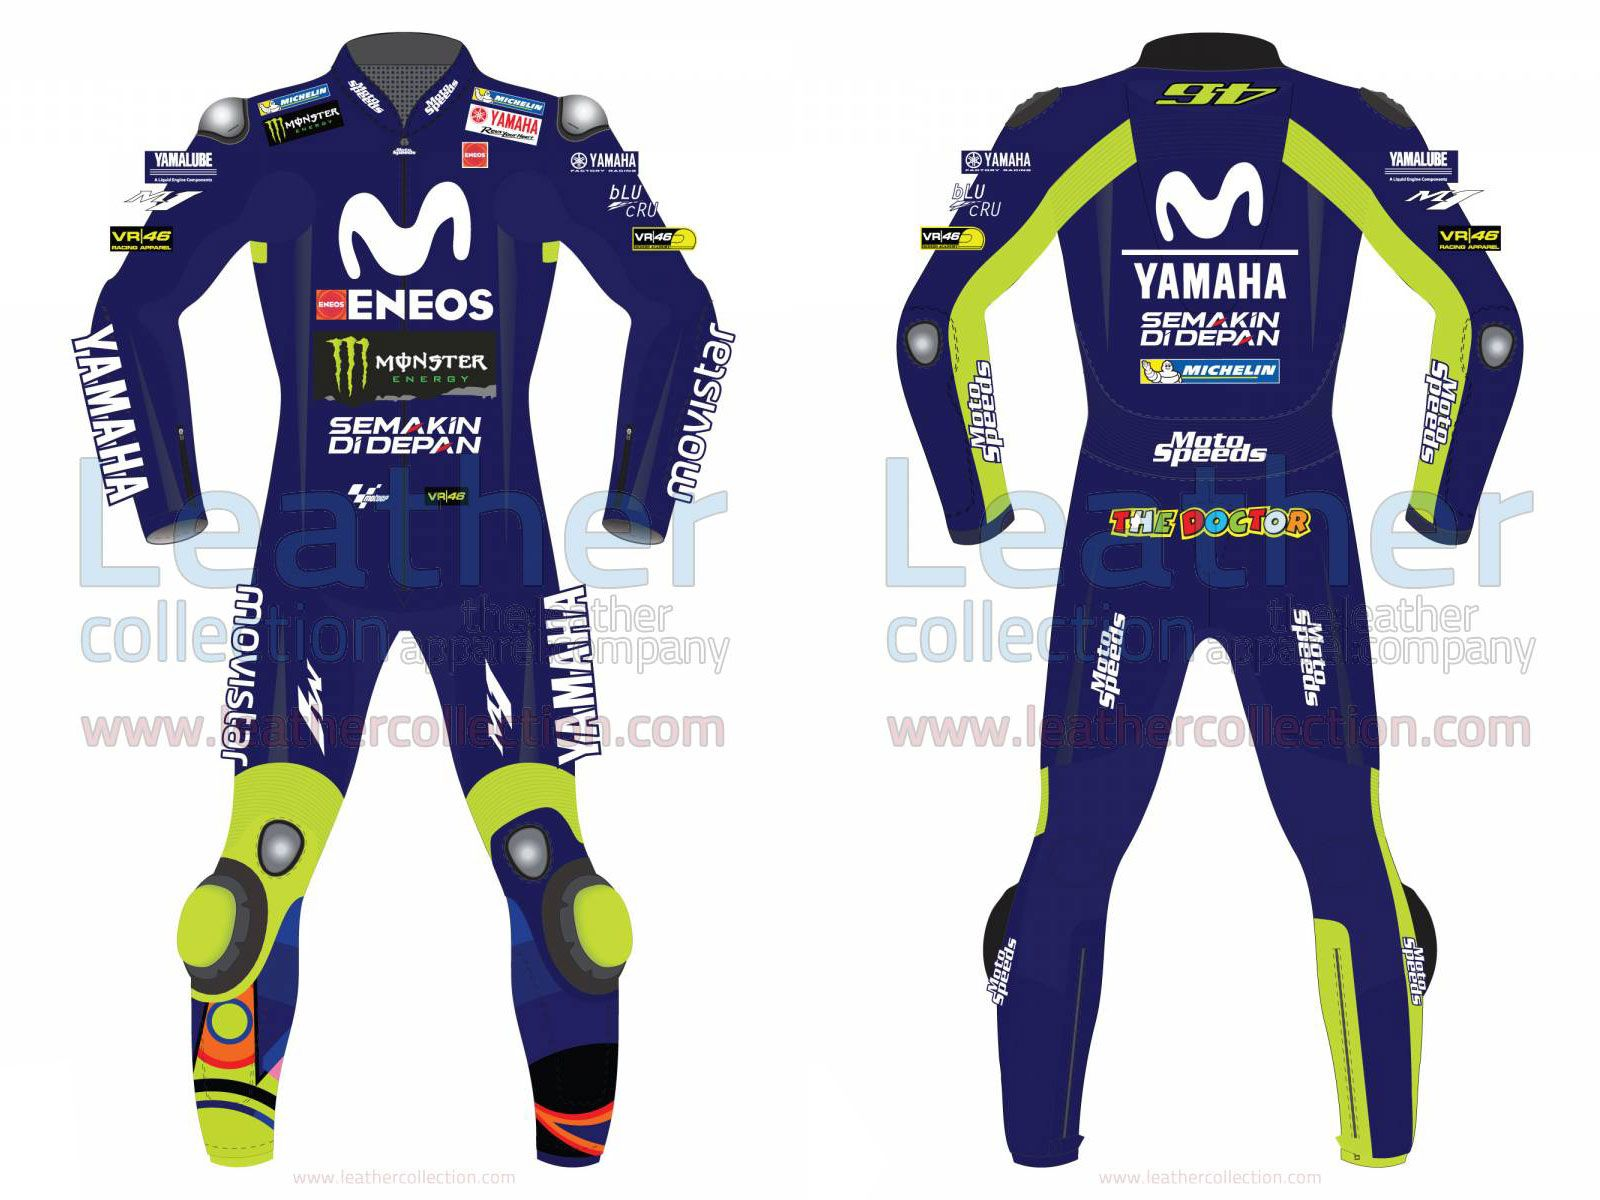 2903b39483ef via Valentino Rossi Movistar Yamaha MotoGP 2018 Race Suit Specially  designed race suit of Valentino Rossi